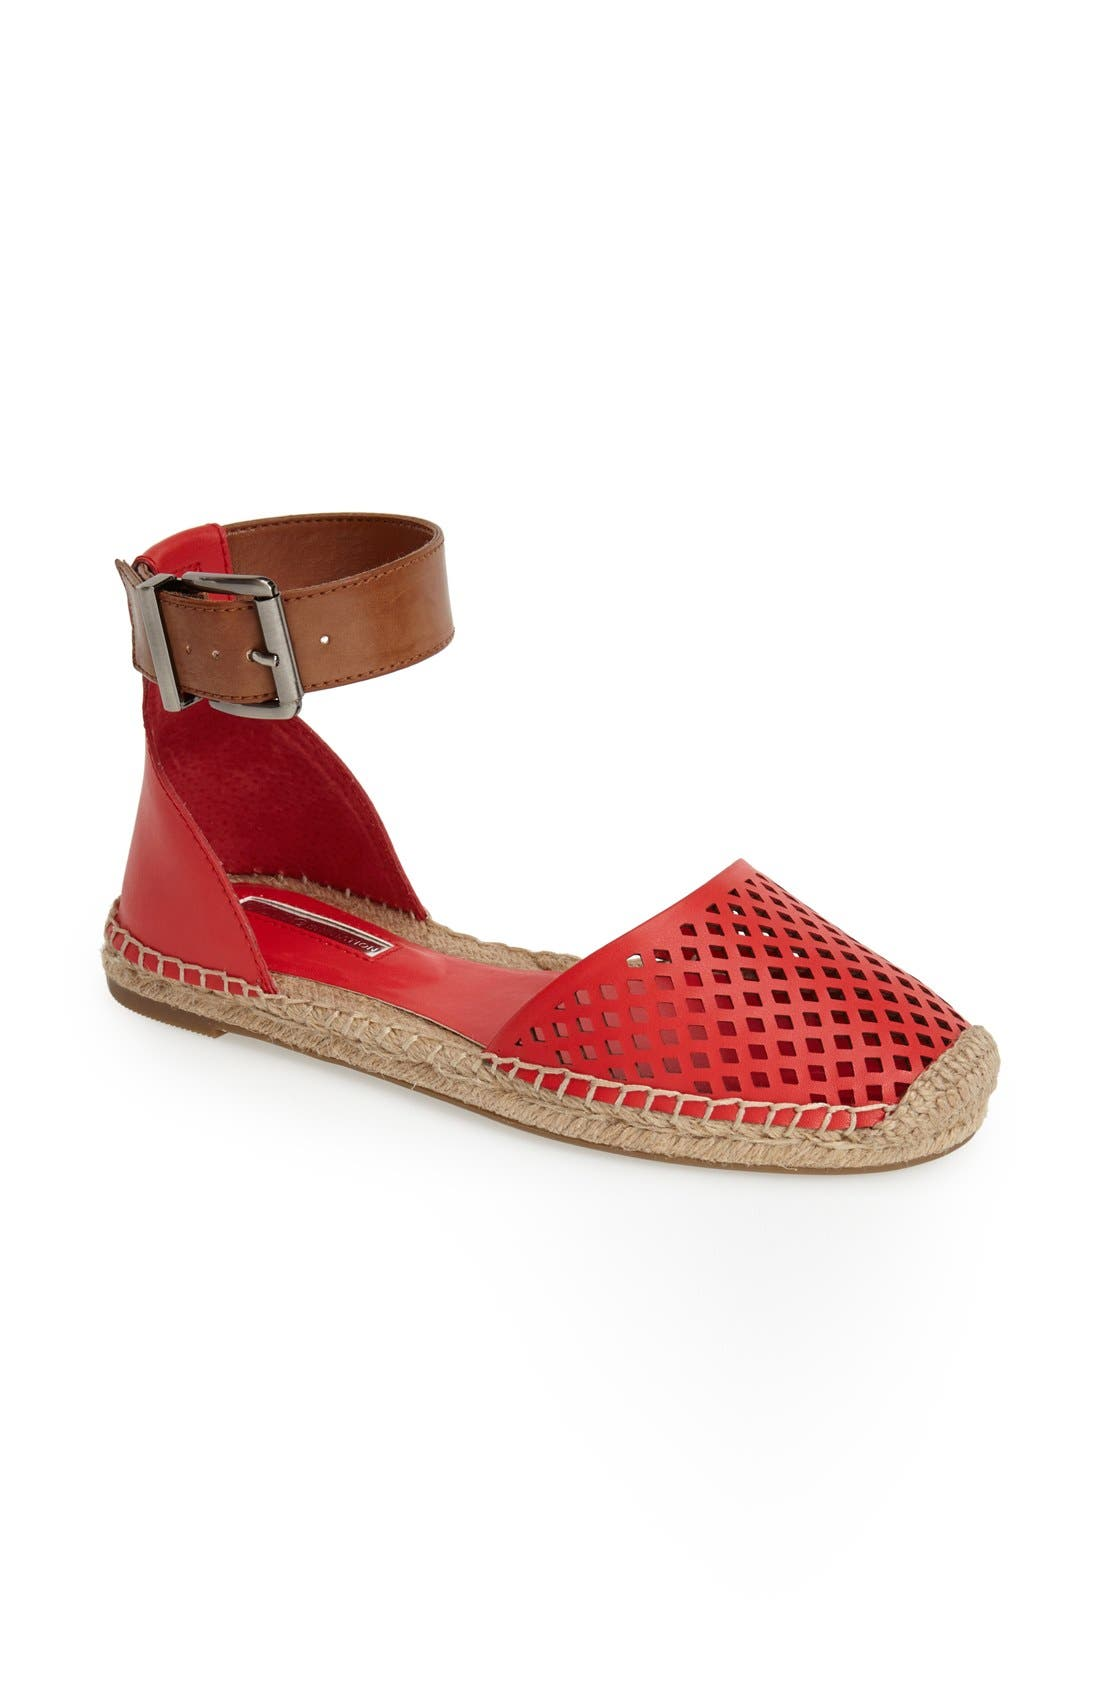 'Felicity 2' Ankle Strap Espadrille Flat,                             Main thumbnail 1, color,                             Passion/ Toffee